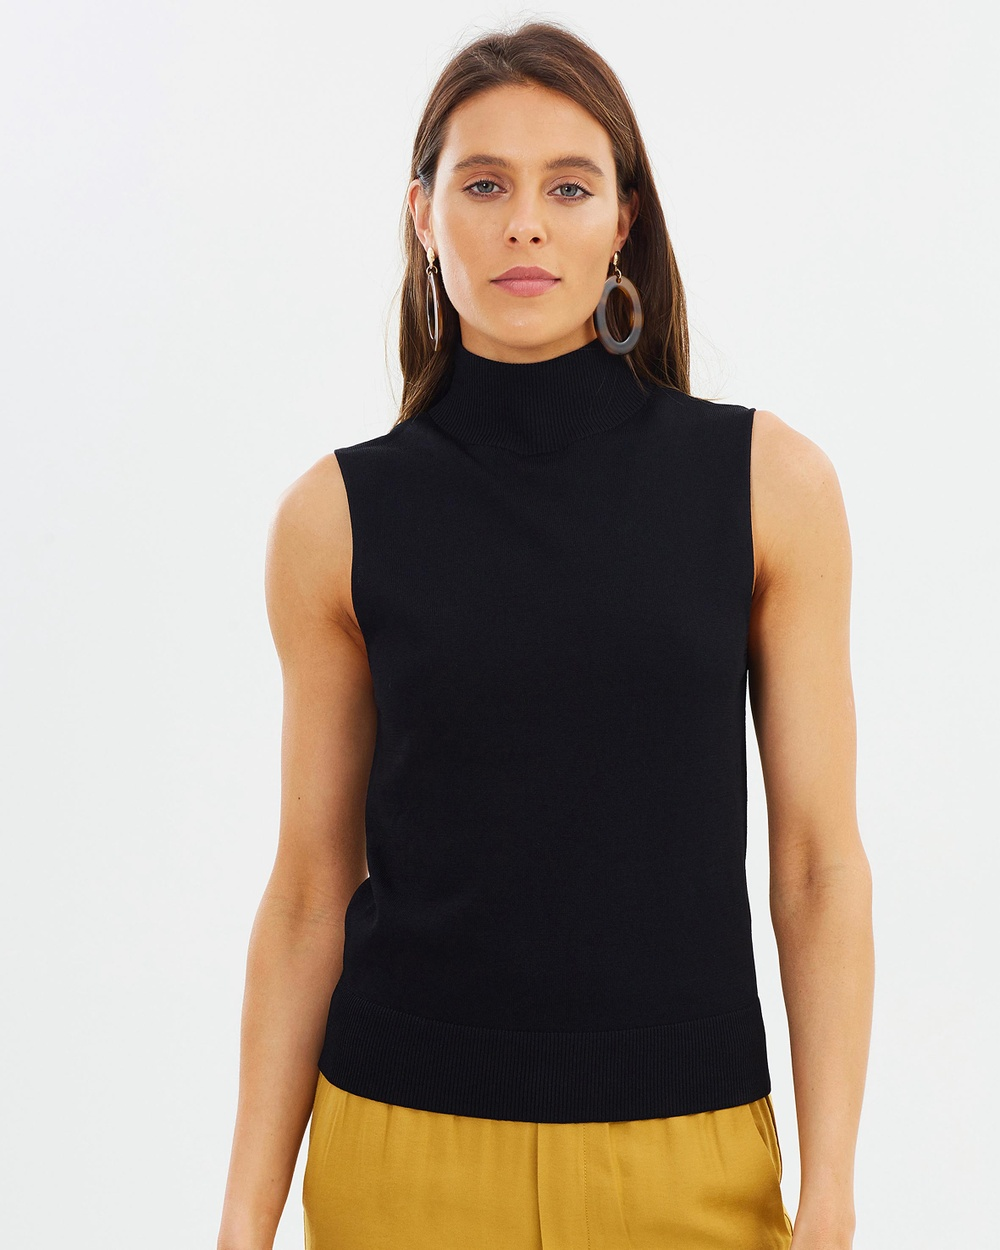 Incu Collection Sleeveless Turtleneck Tops Black Sleeveless Turtleneck